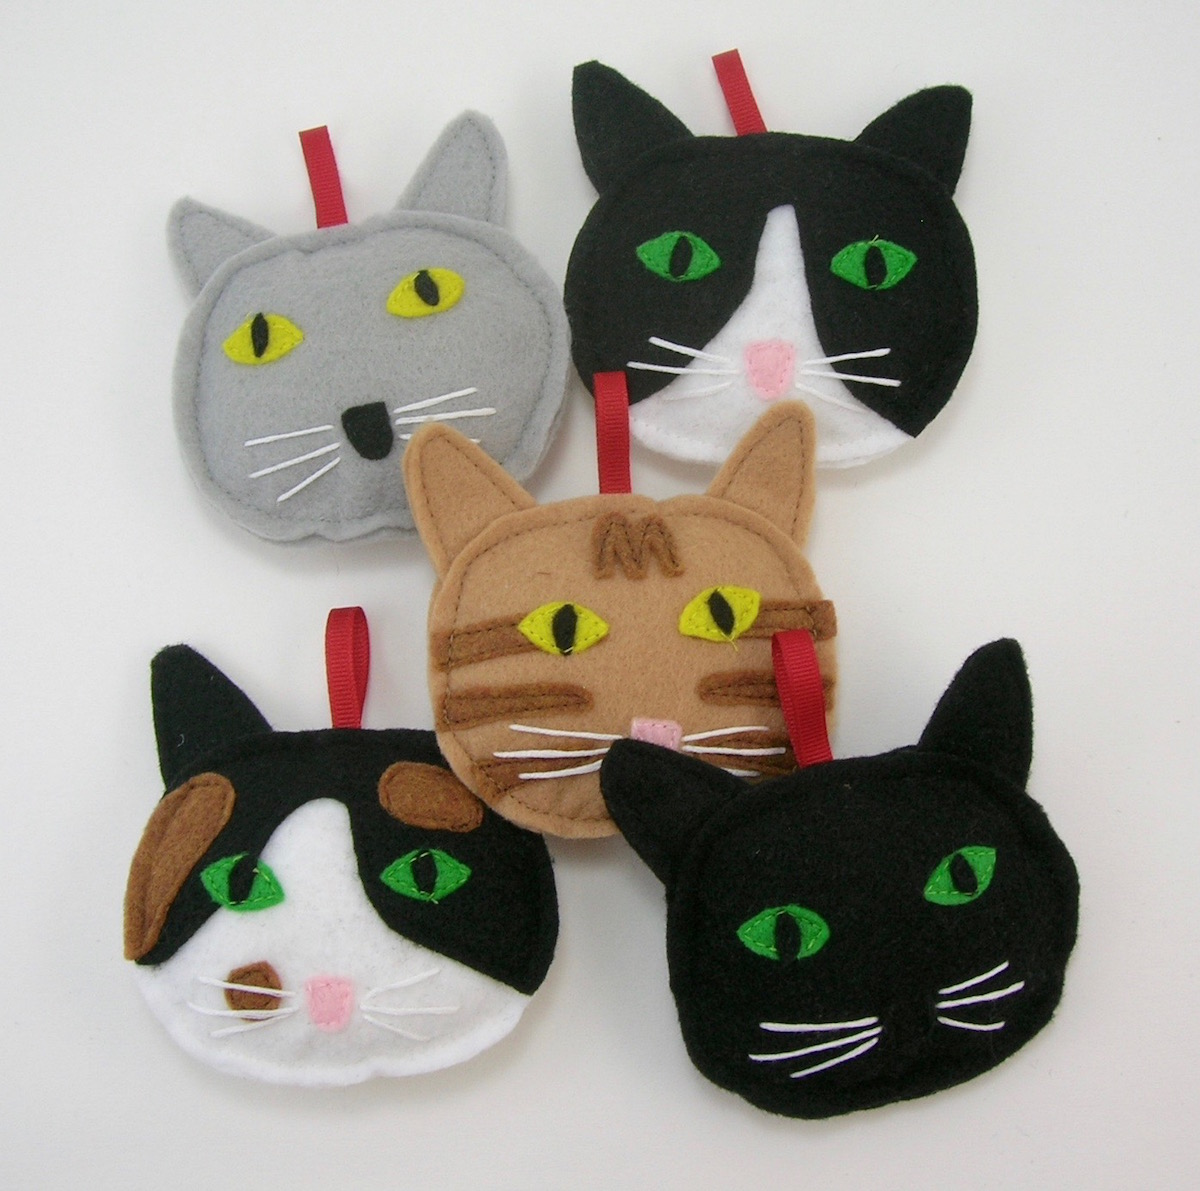 Cat ornaments for Christmas